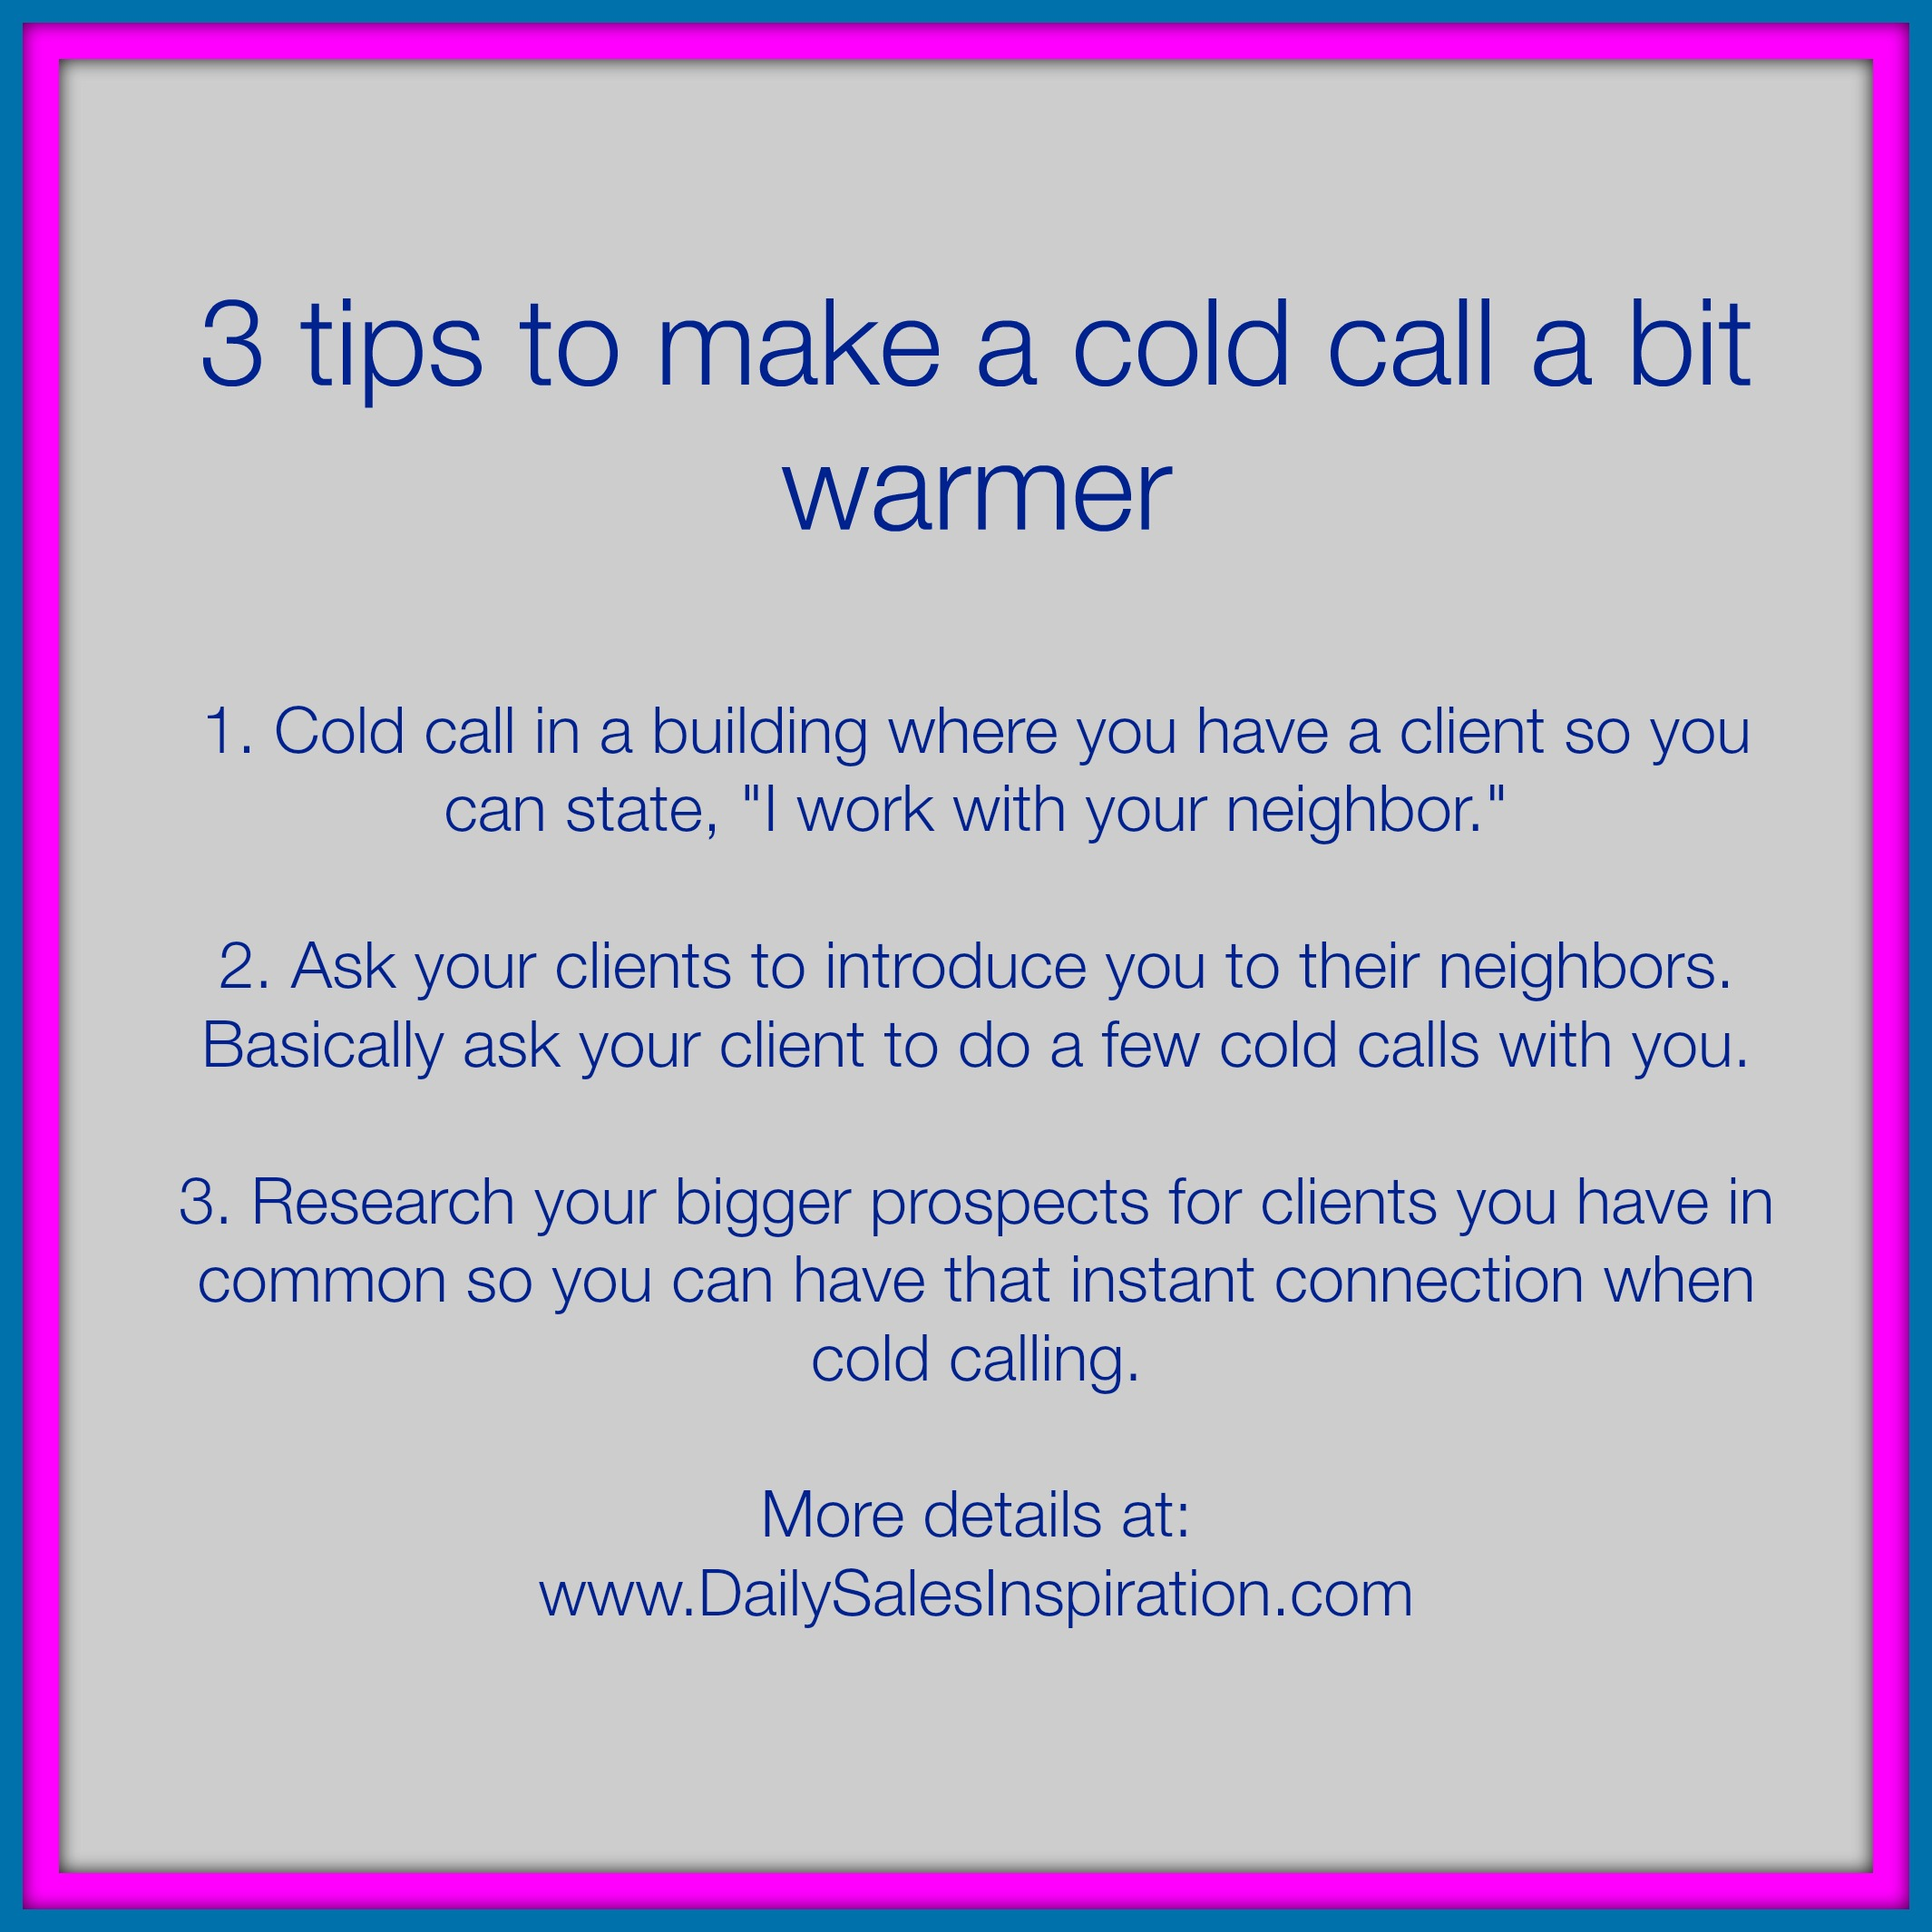 cold calling daily s inspiration 3 tips on making a cold call warmer